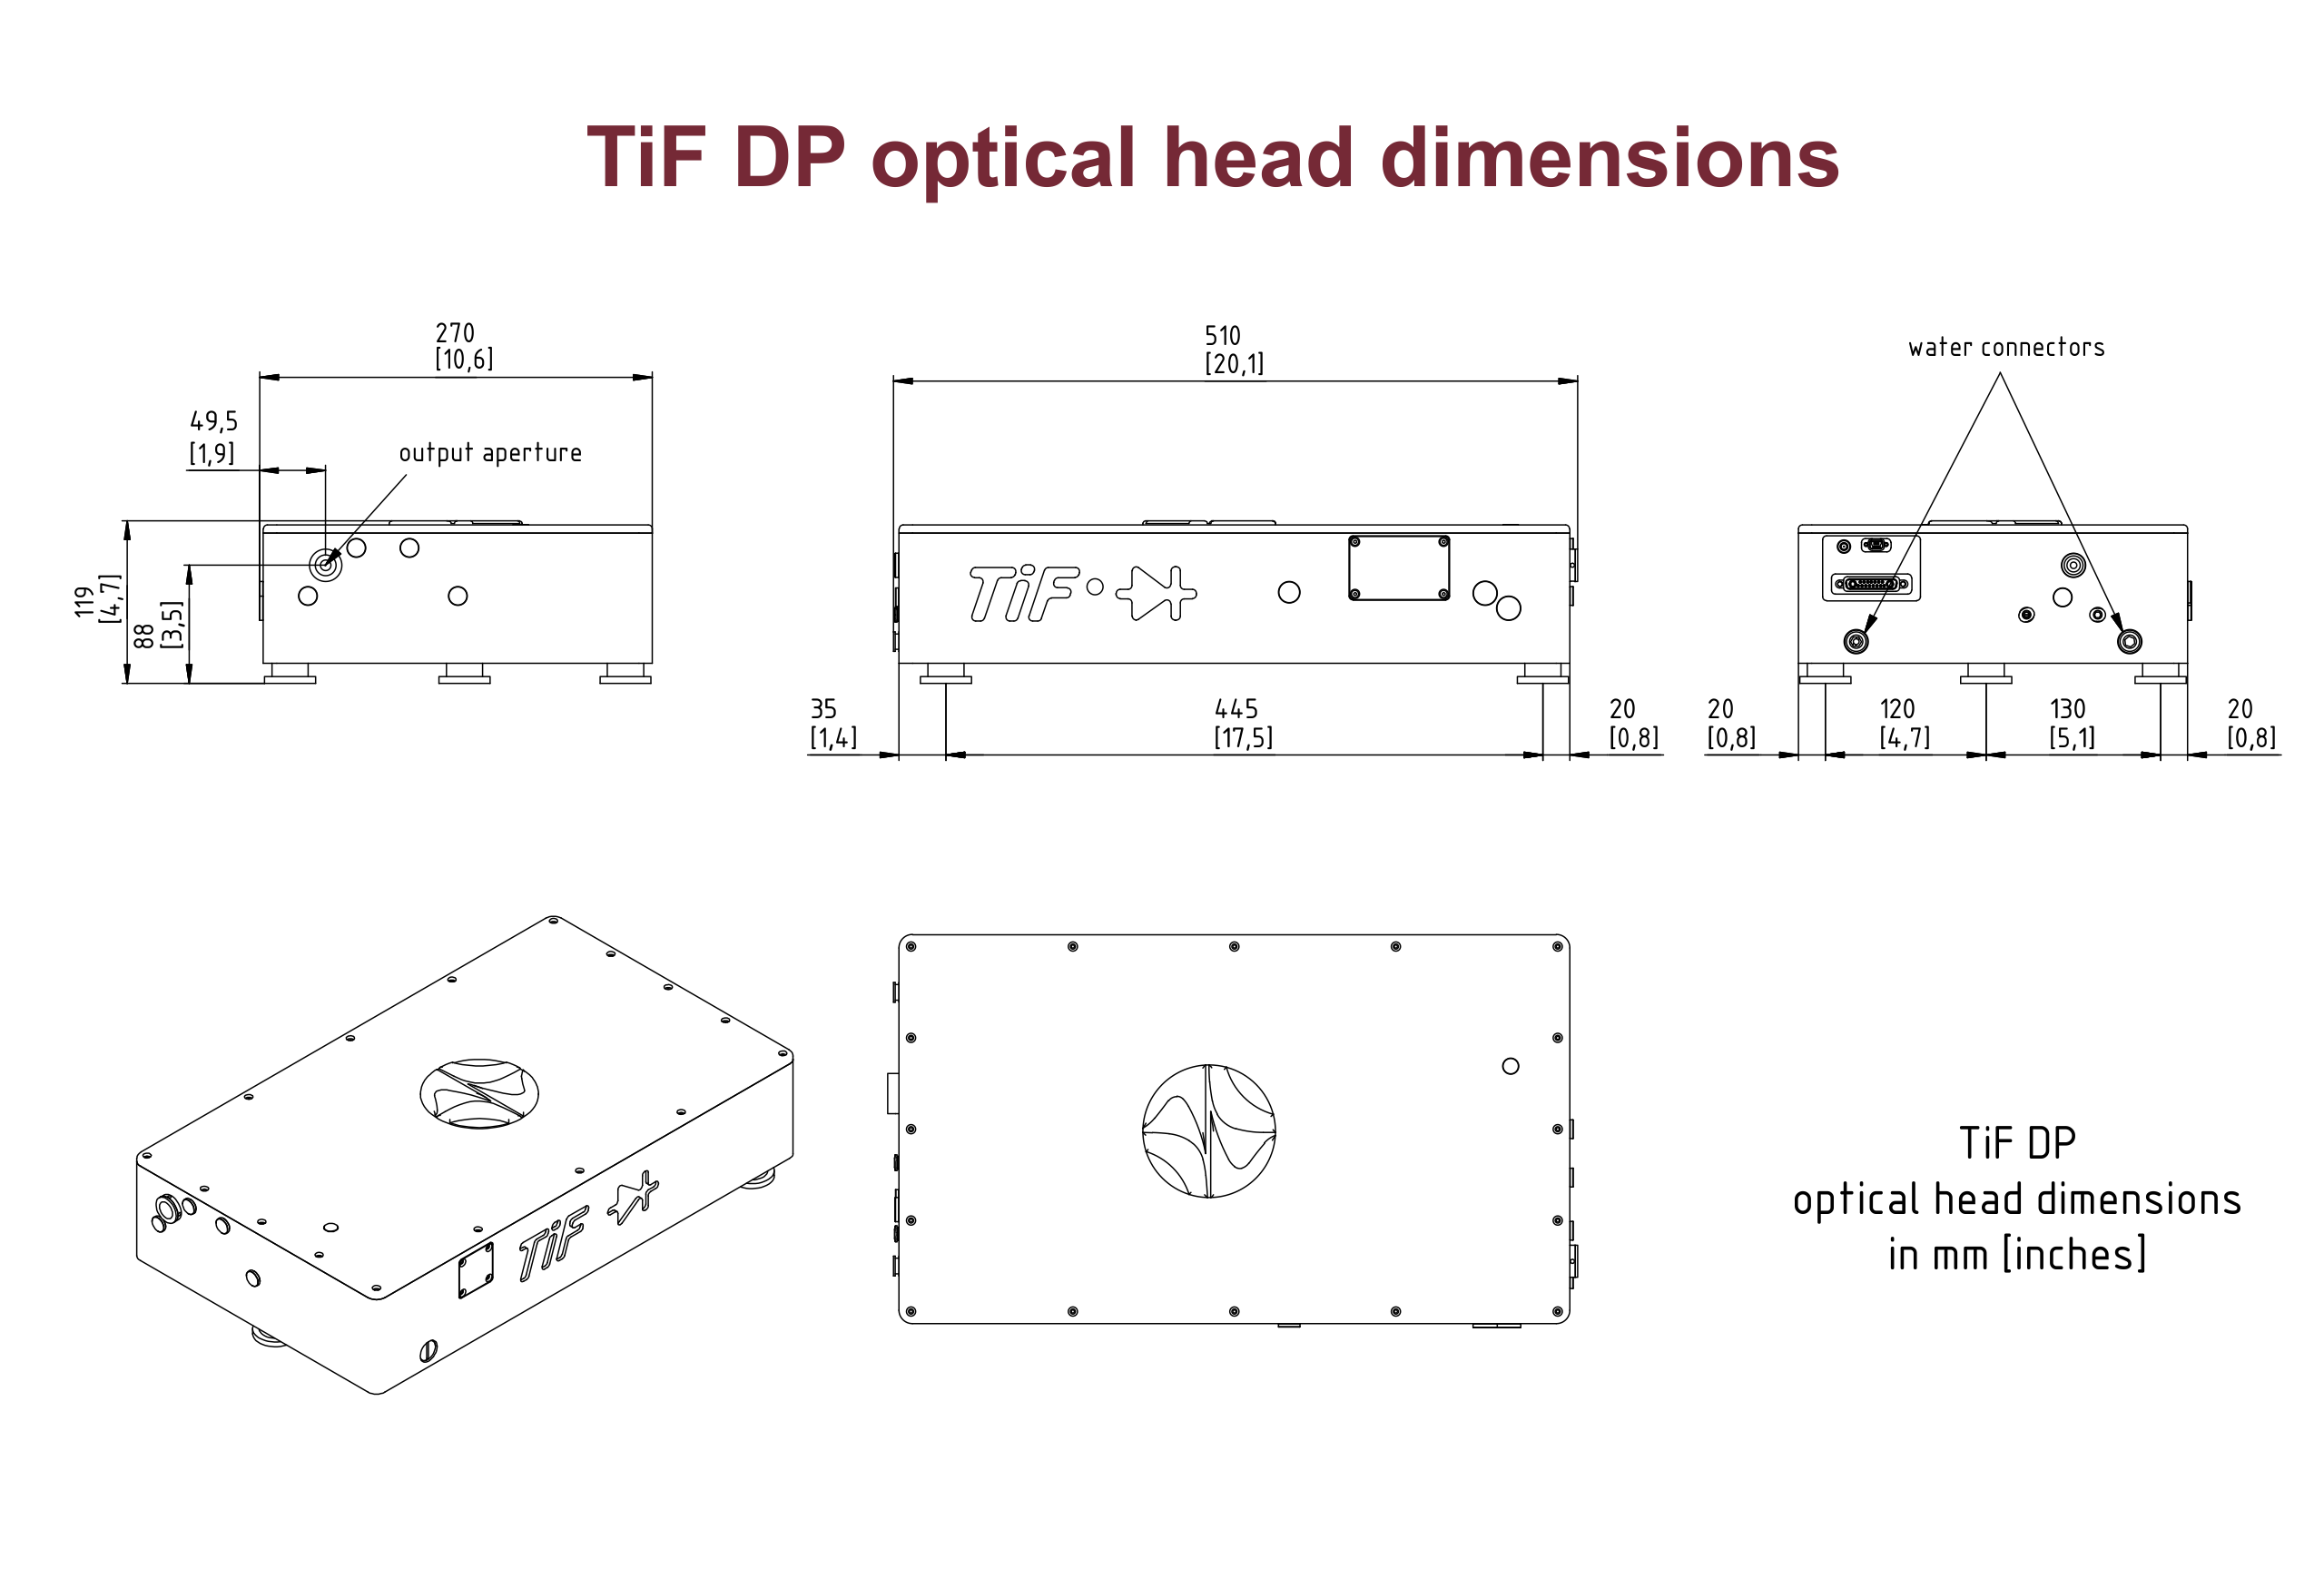 Dimensions of the TiF-DP laser head including the pump module